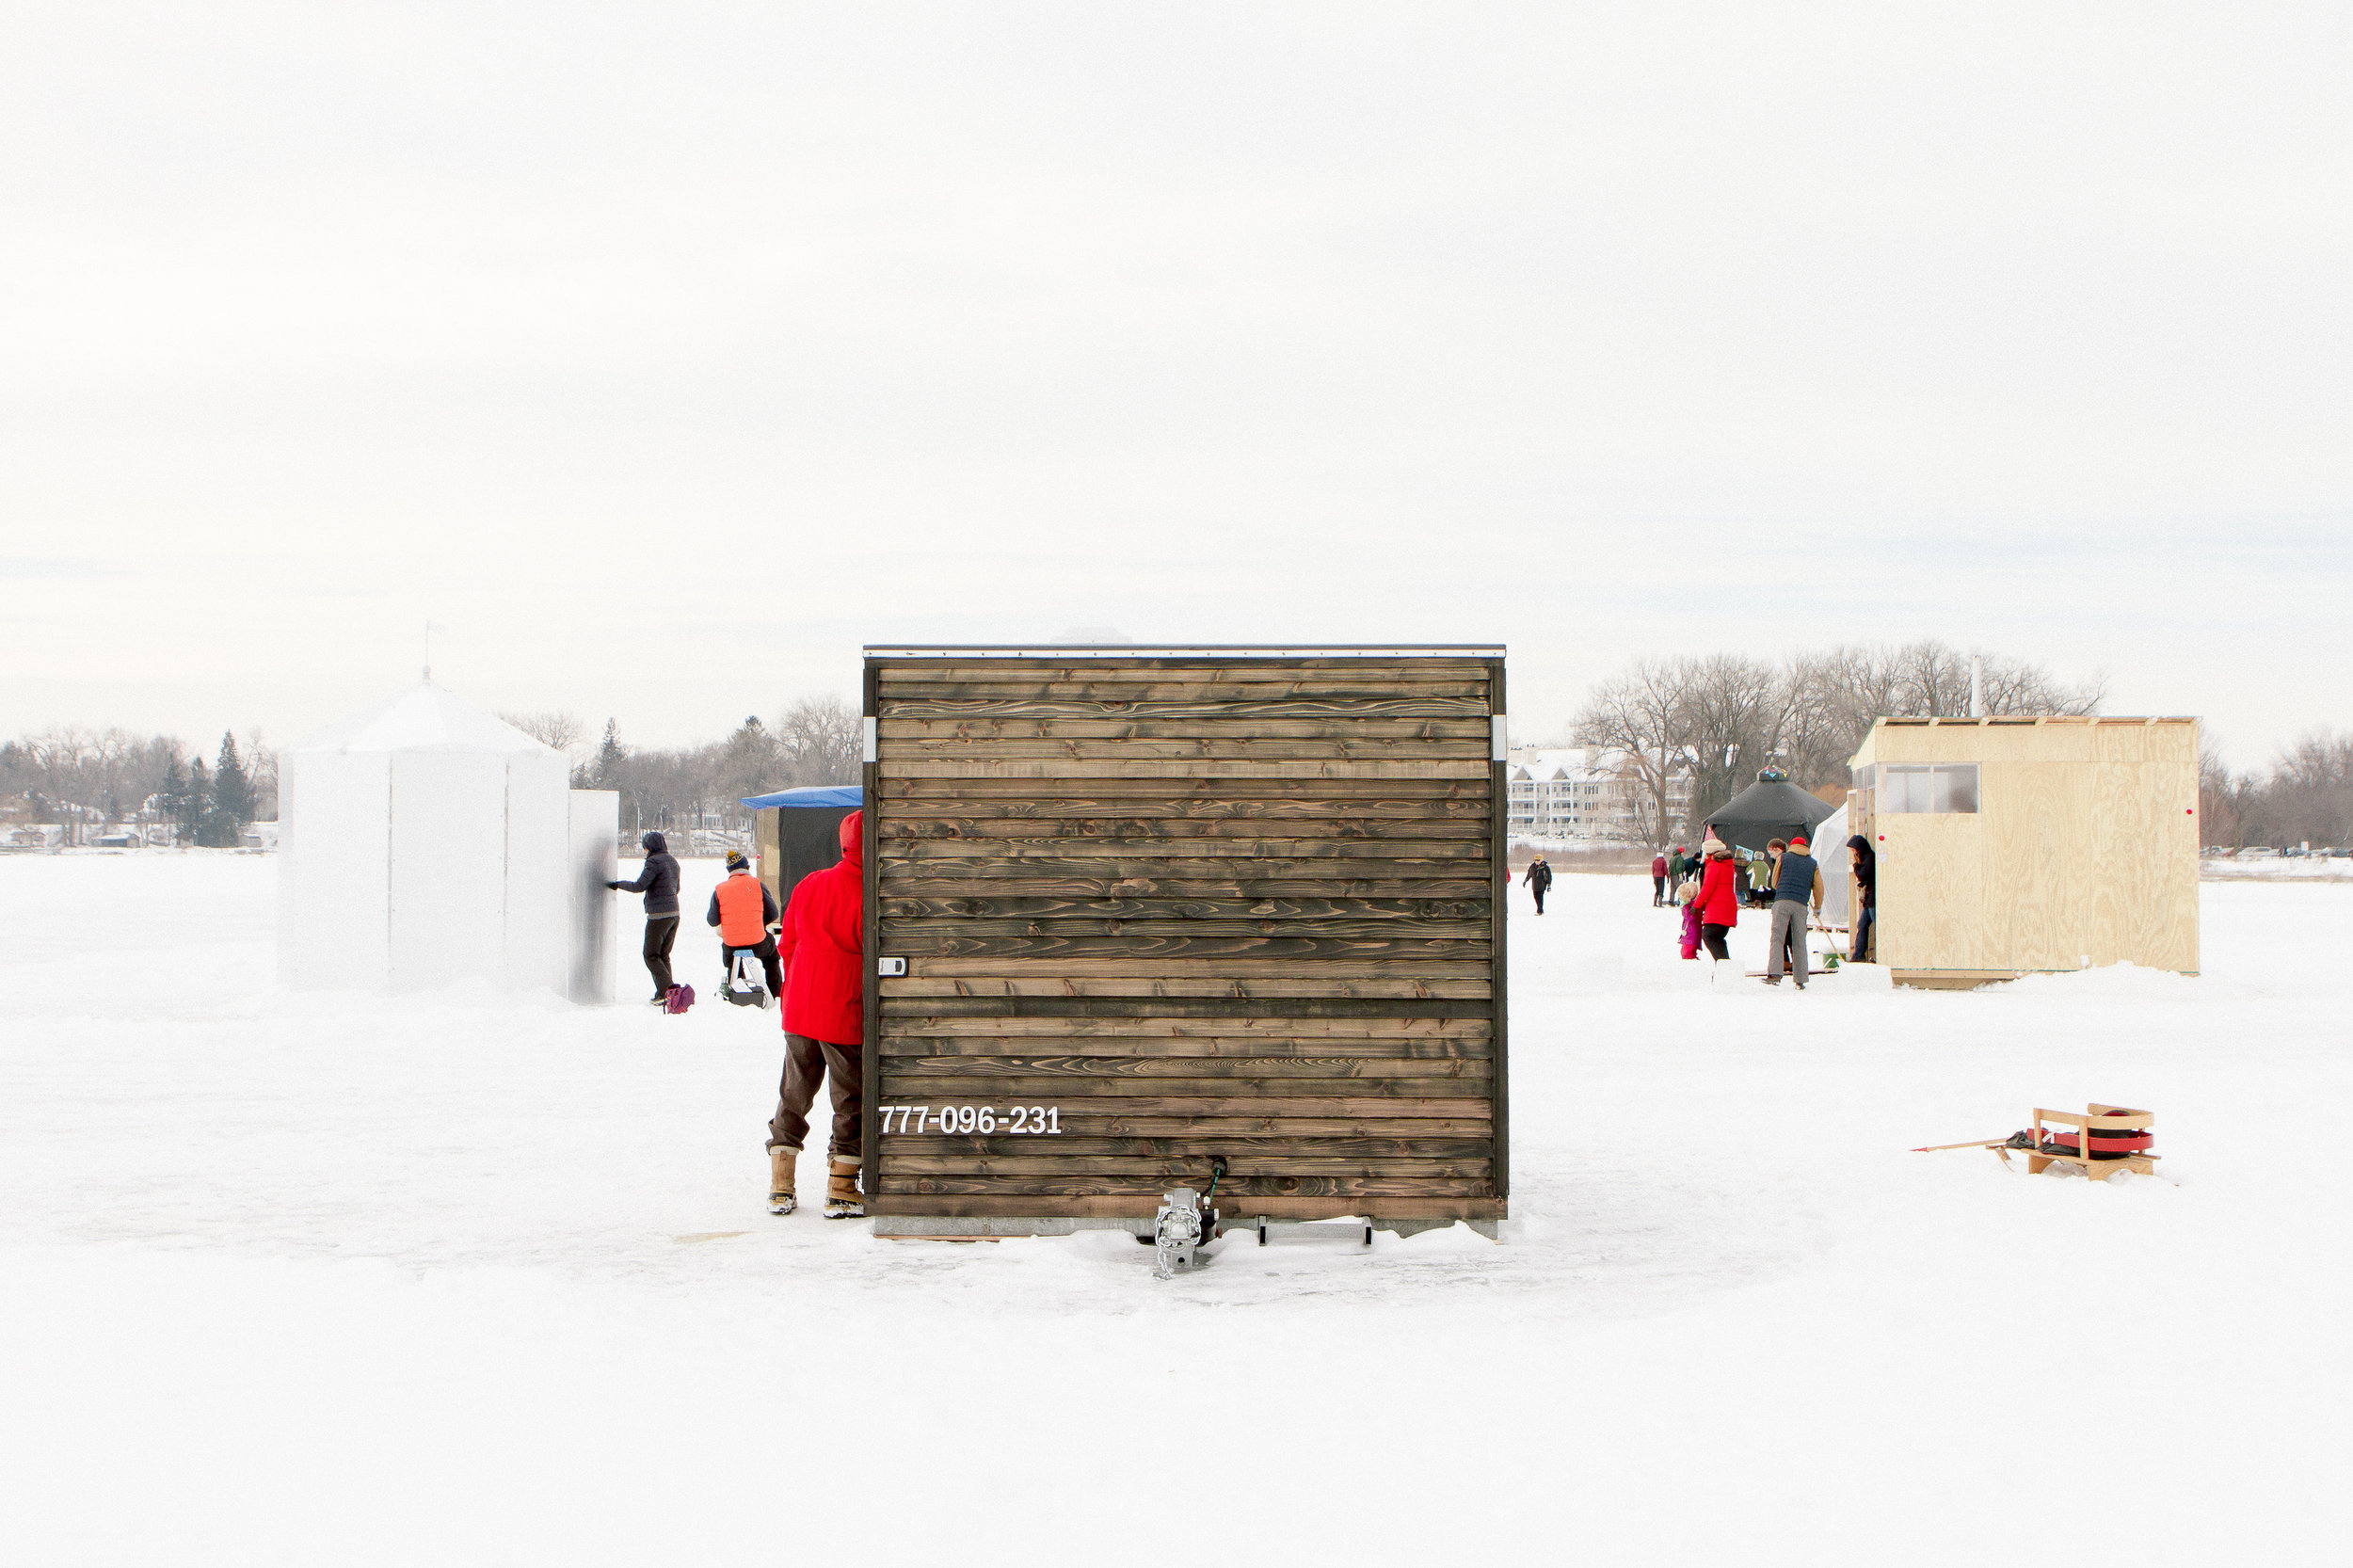 NewStudio Architecture designed its art shanty on skids to be portable